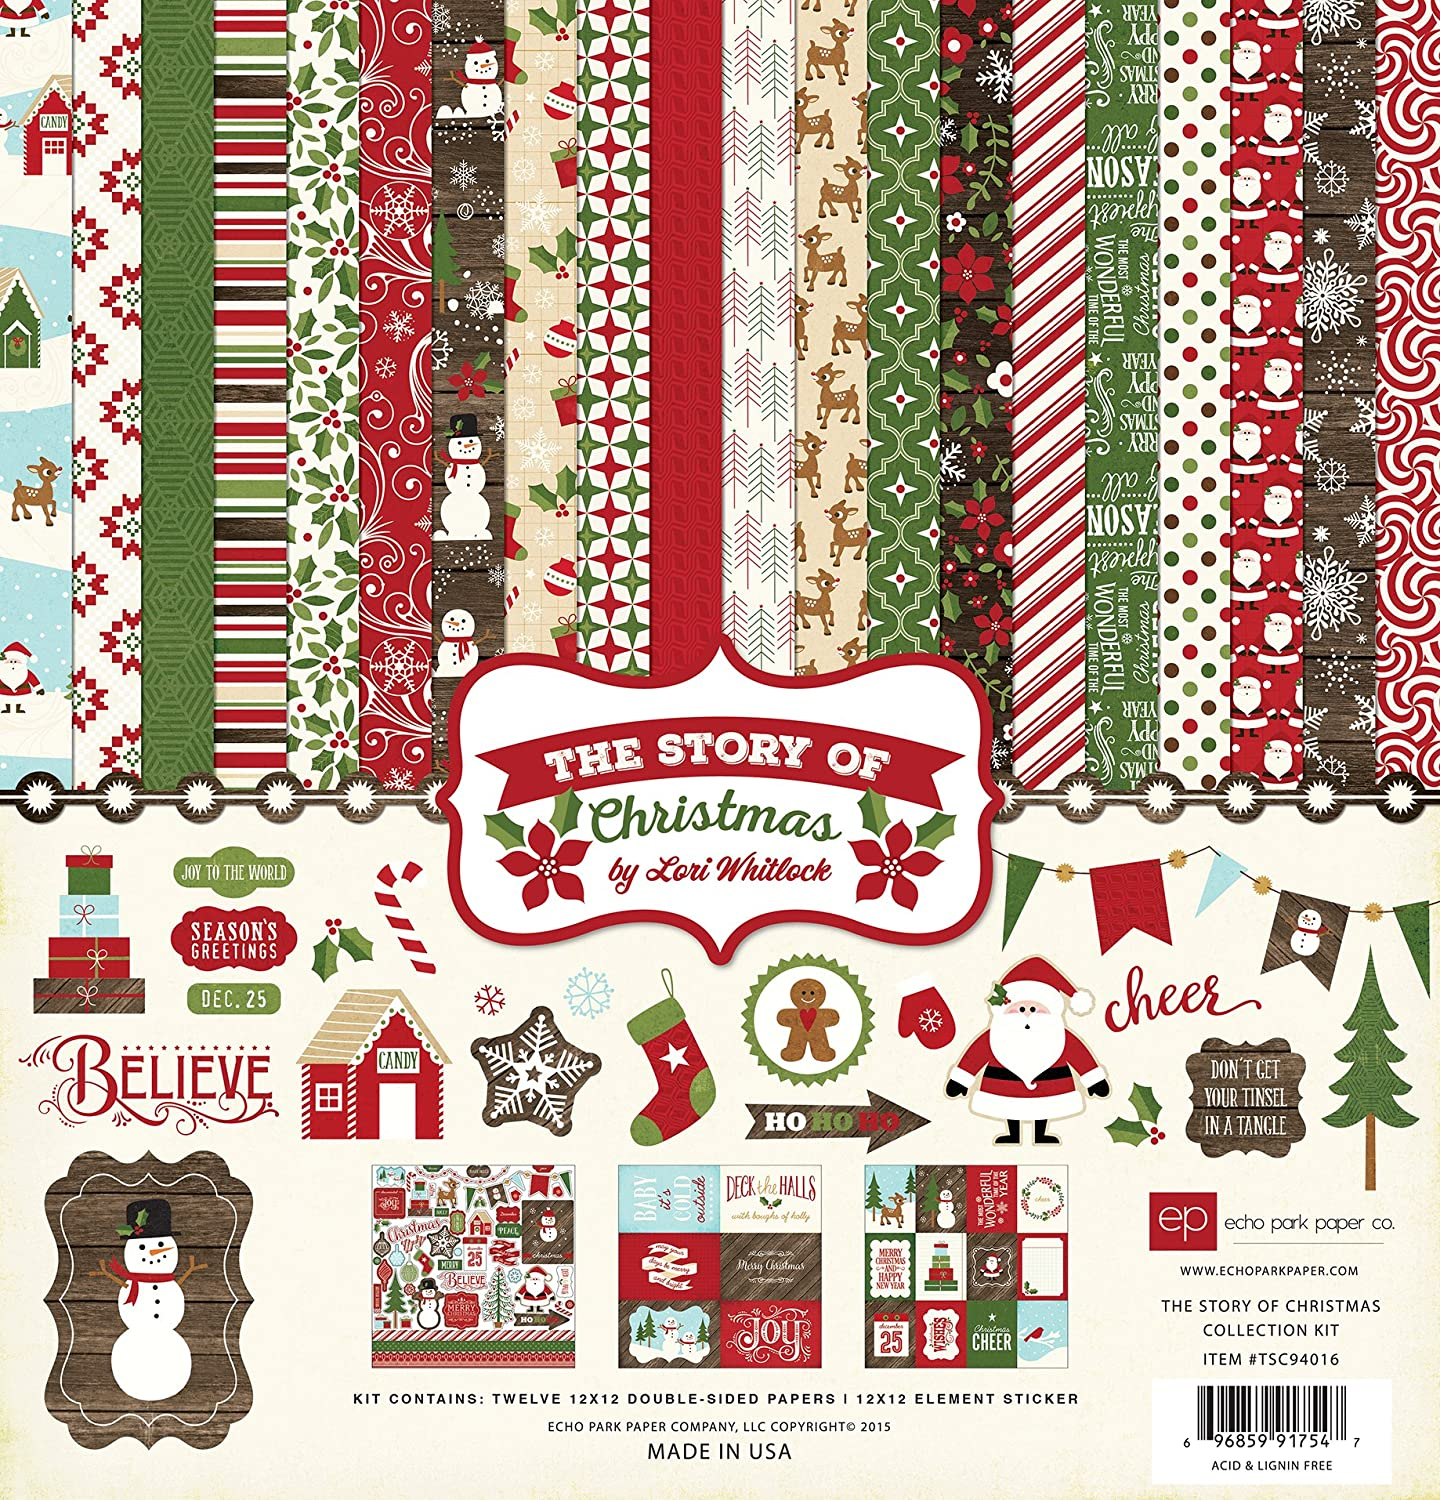 Echo Park Paper Company TSC94016 The Story of Christmas Collection Kit Echo Park Paper Co.